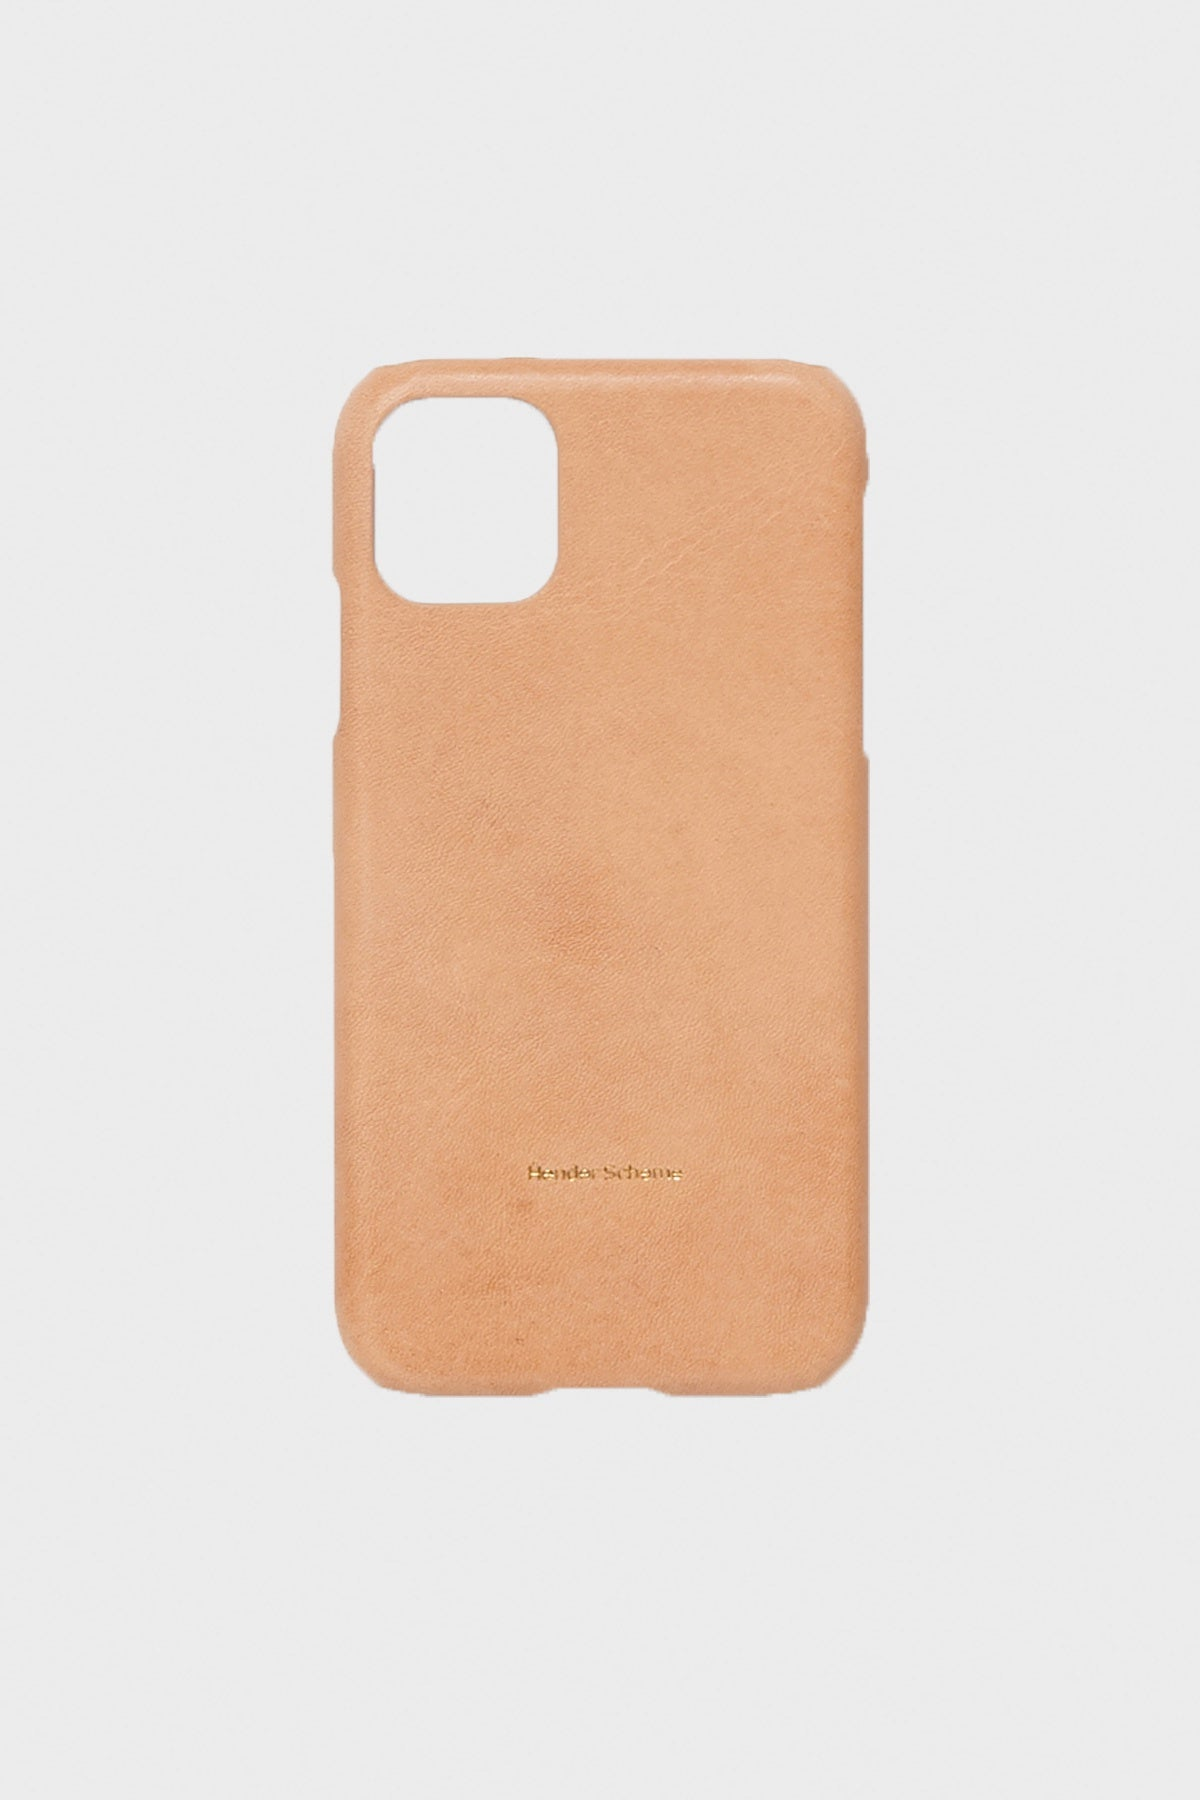 Hender Scheme - iPhone 11 Case - Natural - Canoe Club